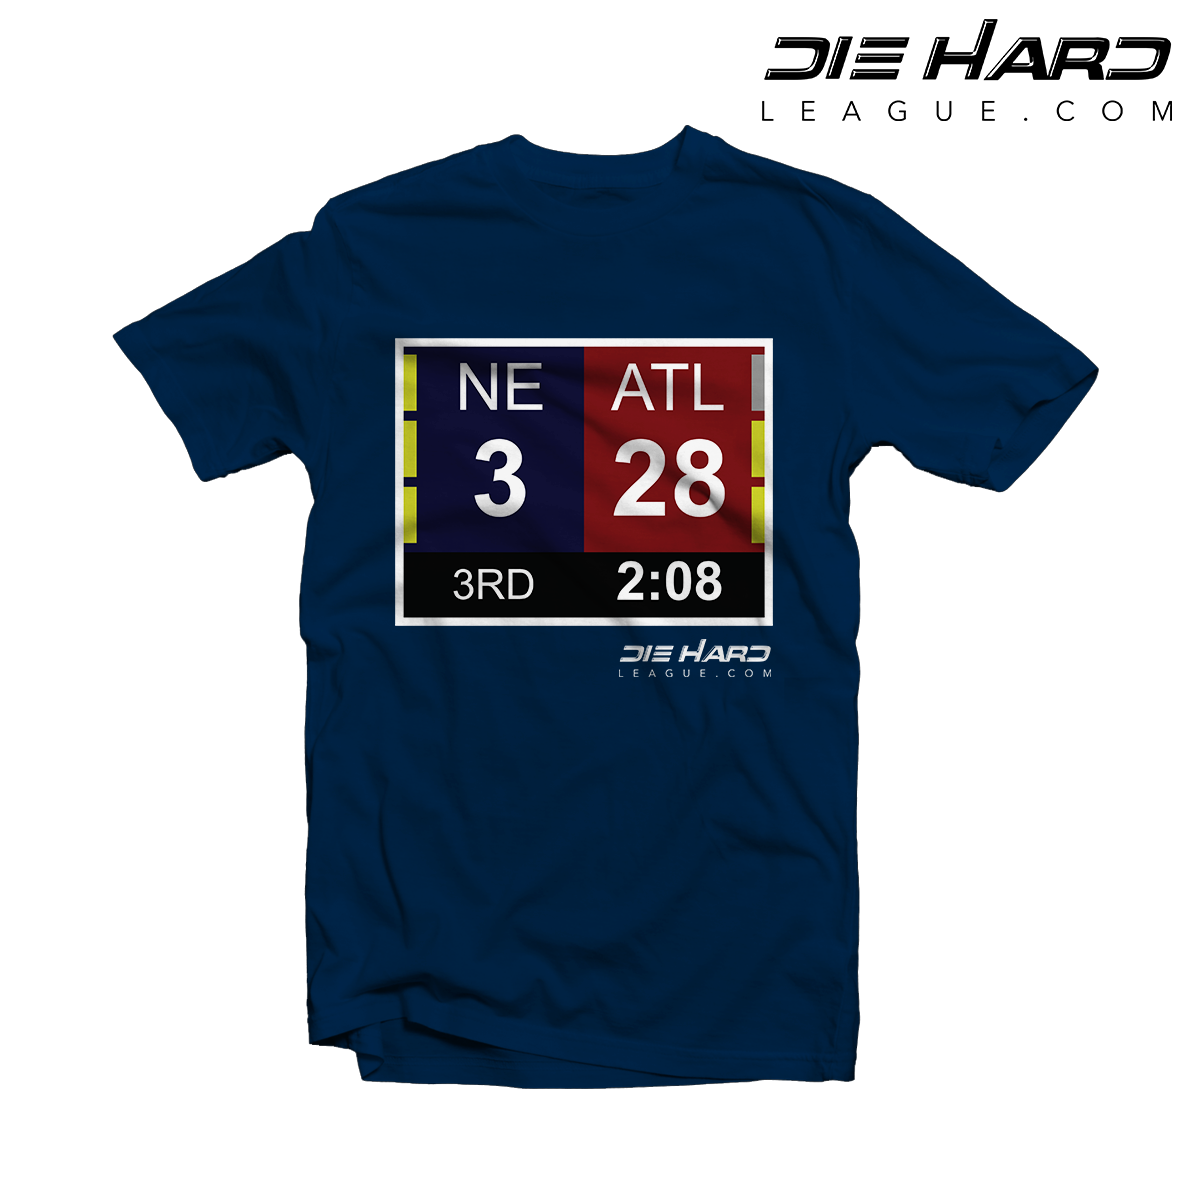 Funny new england patriots shirts patriots superbowl New england patriots shirts